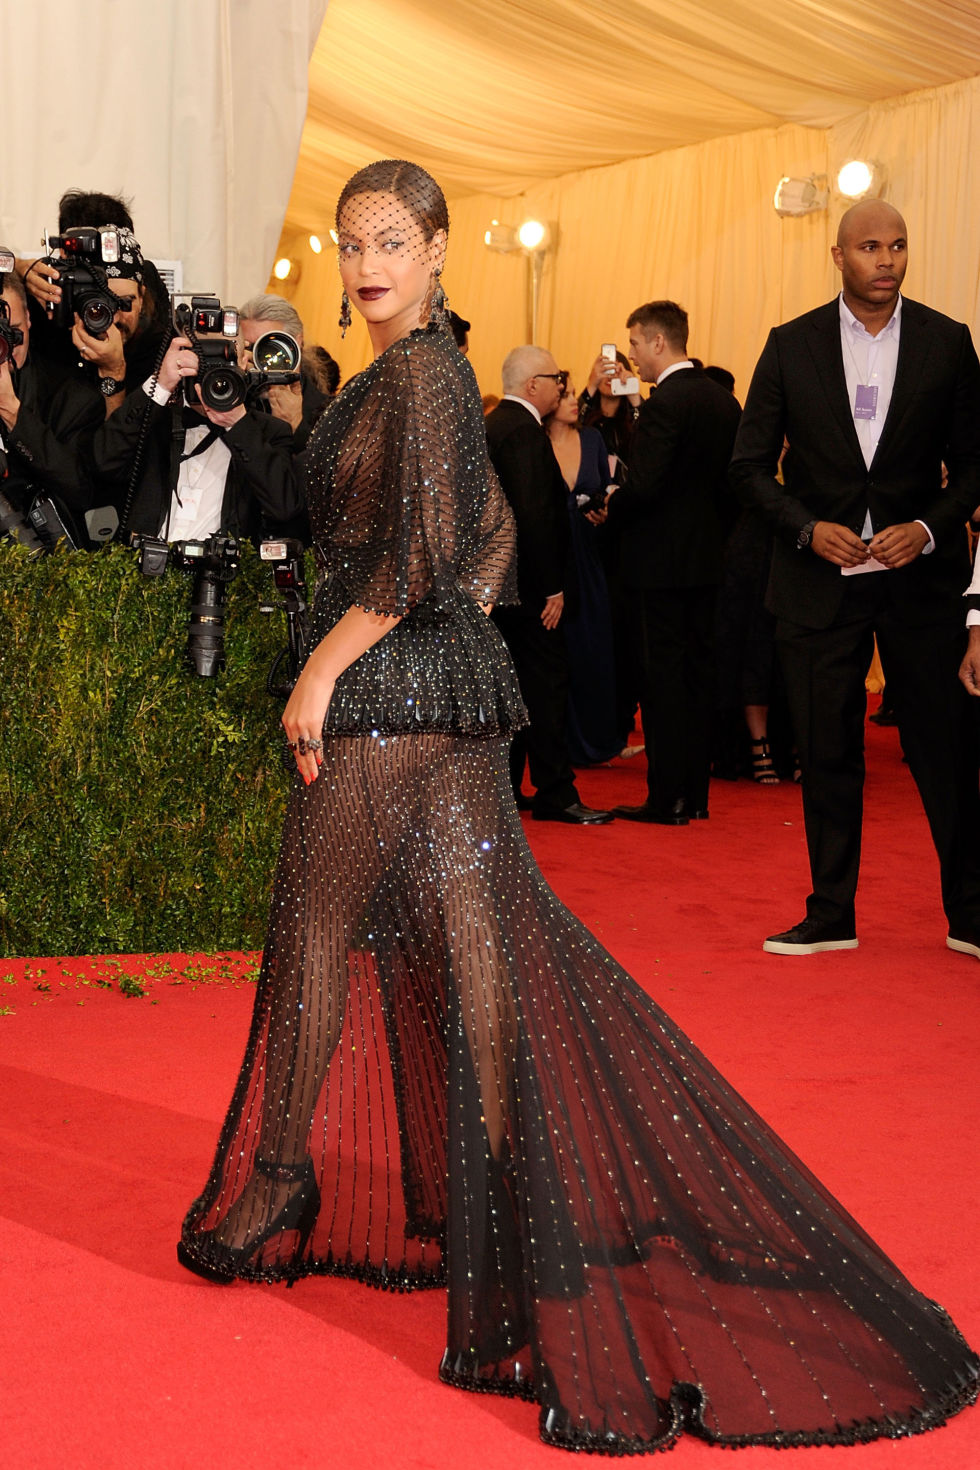 Trains at The Met Gala Red